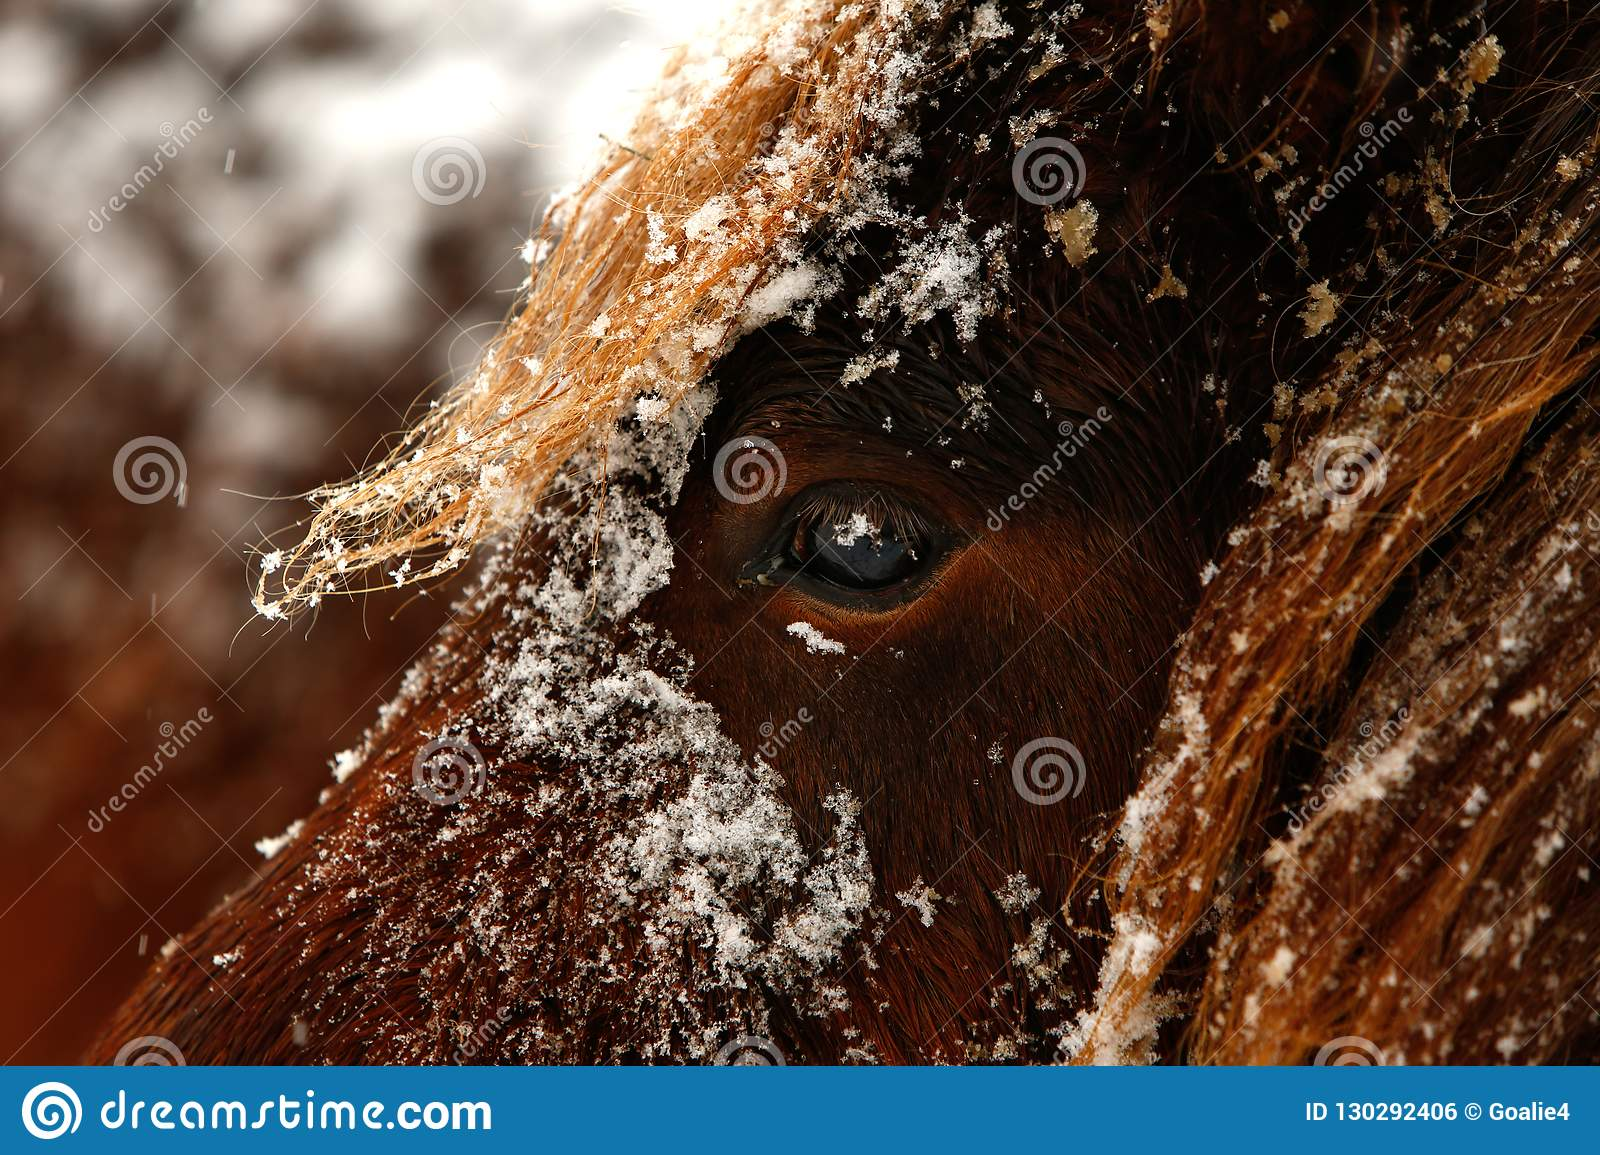 Detailed close up portrait of a snowy brown Horse